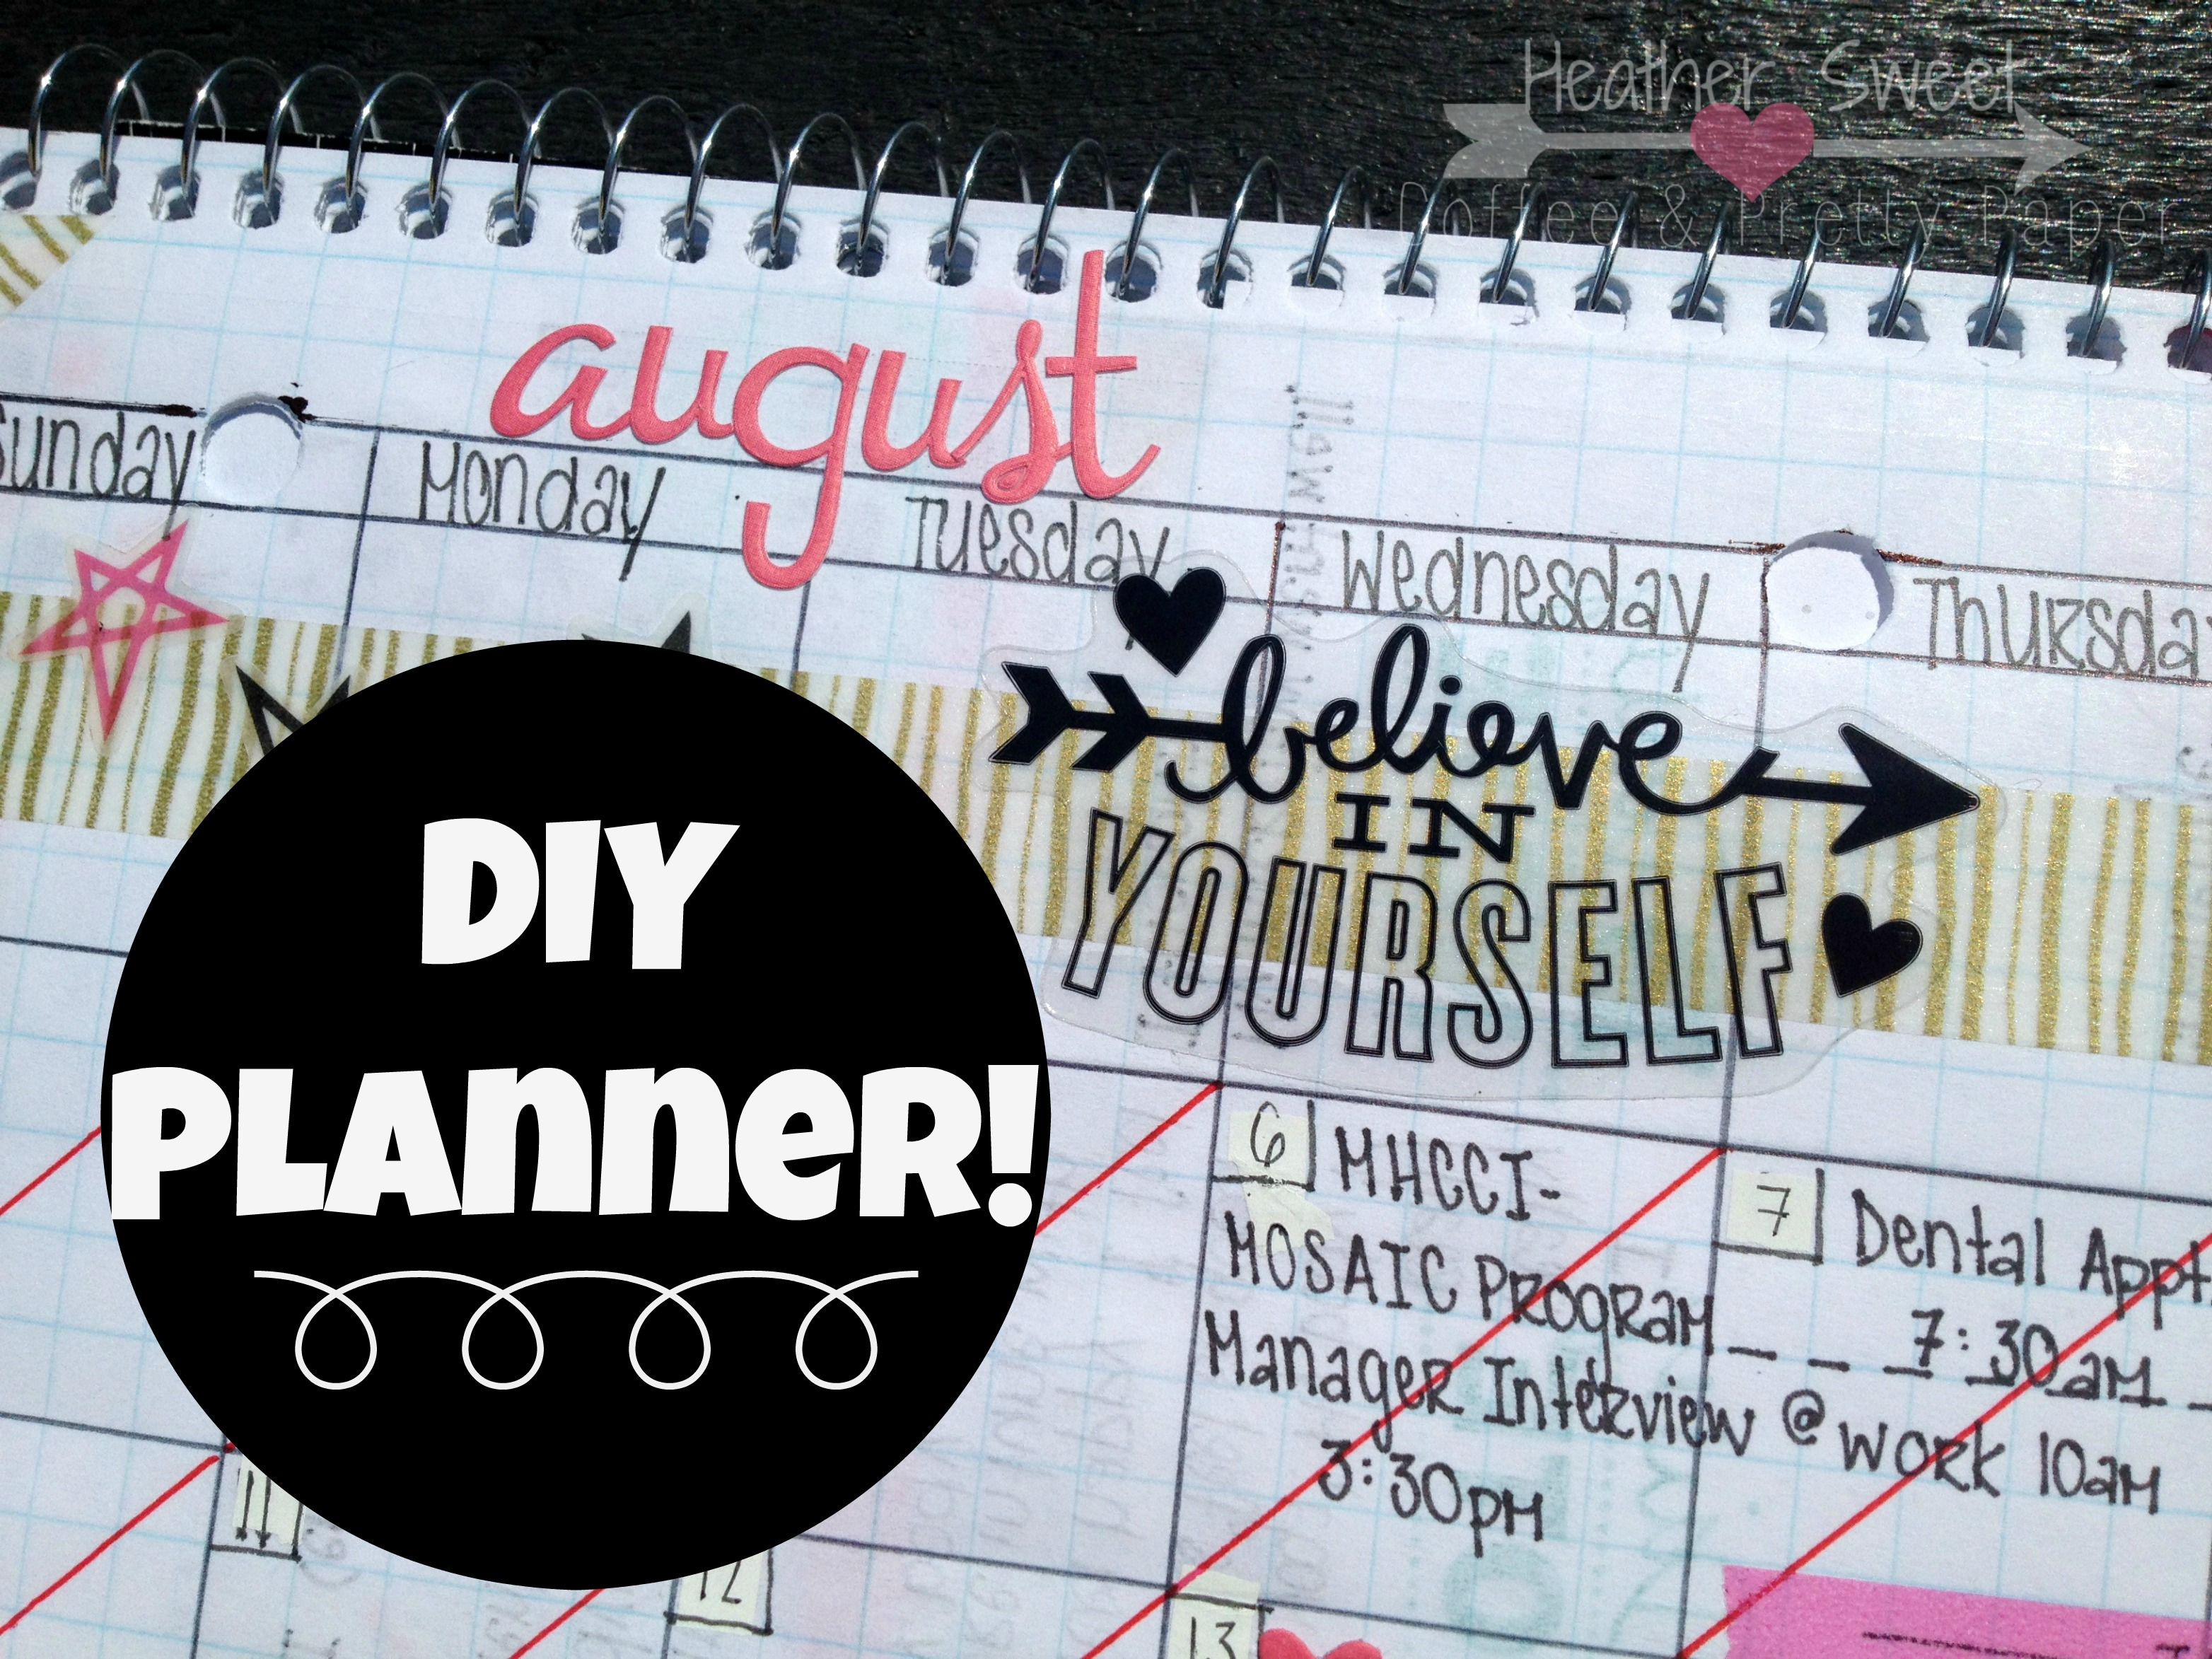 DIY Planner Blog Post Promotion